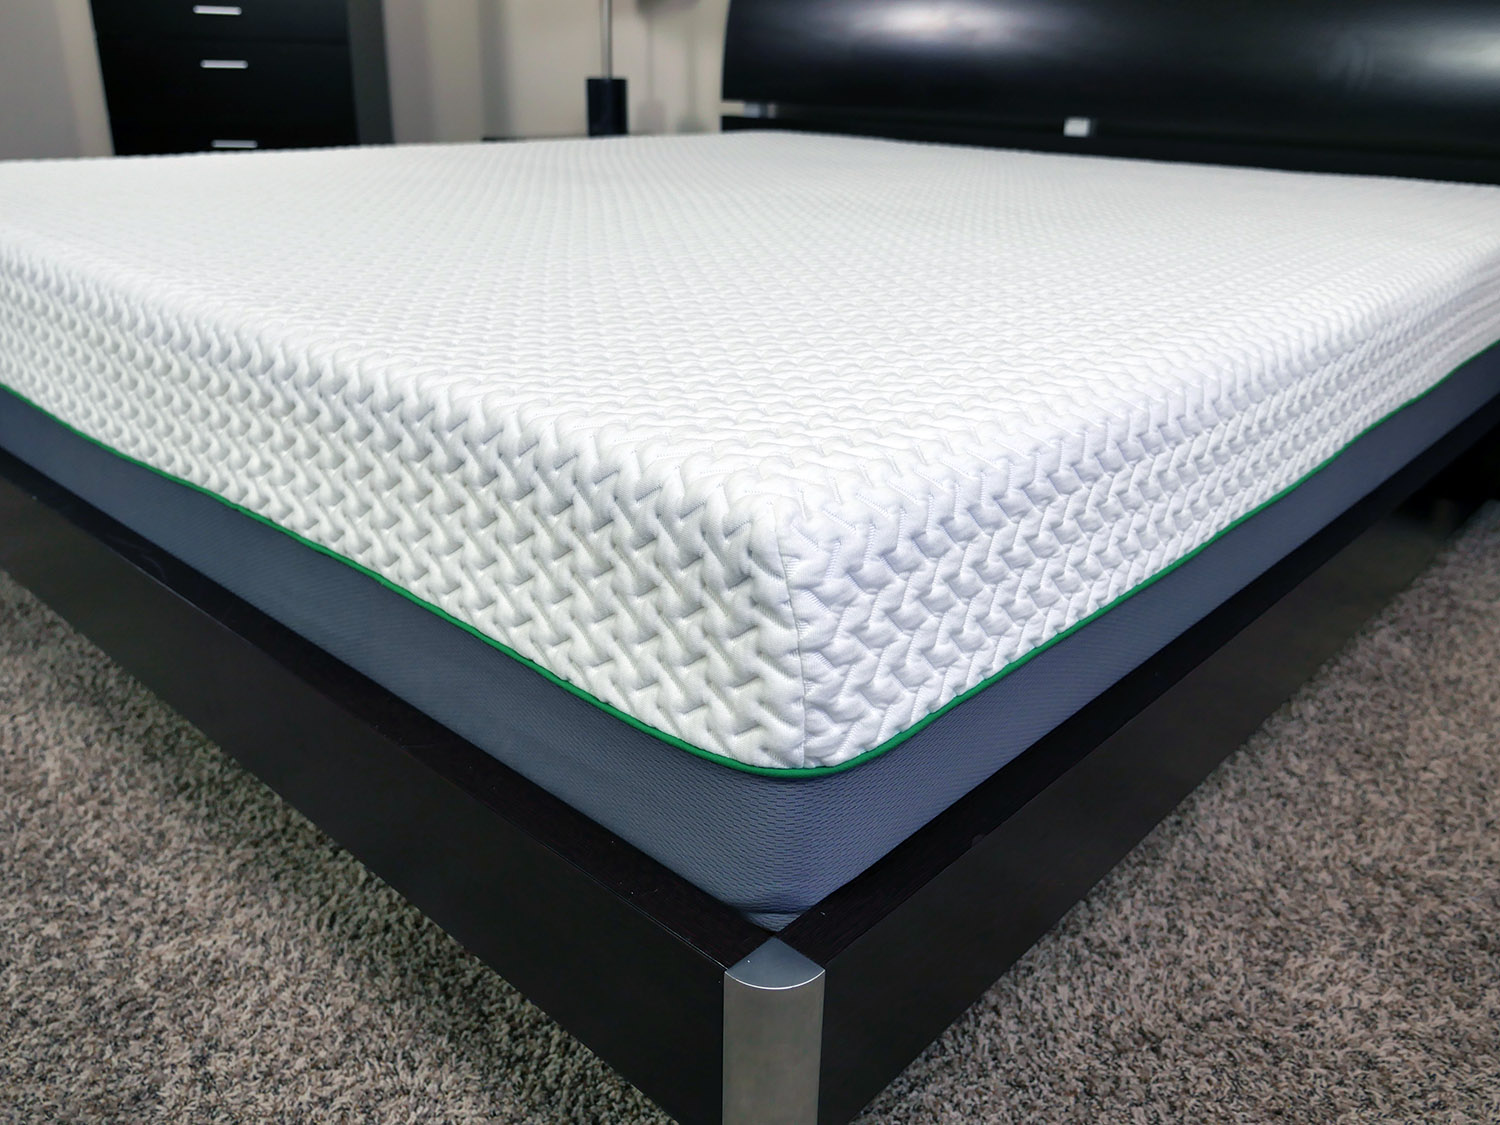 Close up shot of the memory foam Hyde & Sleep mattress cover